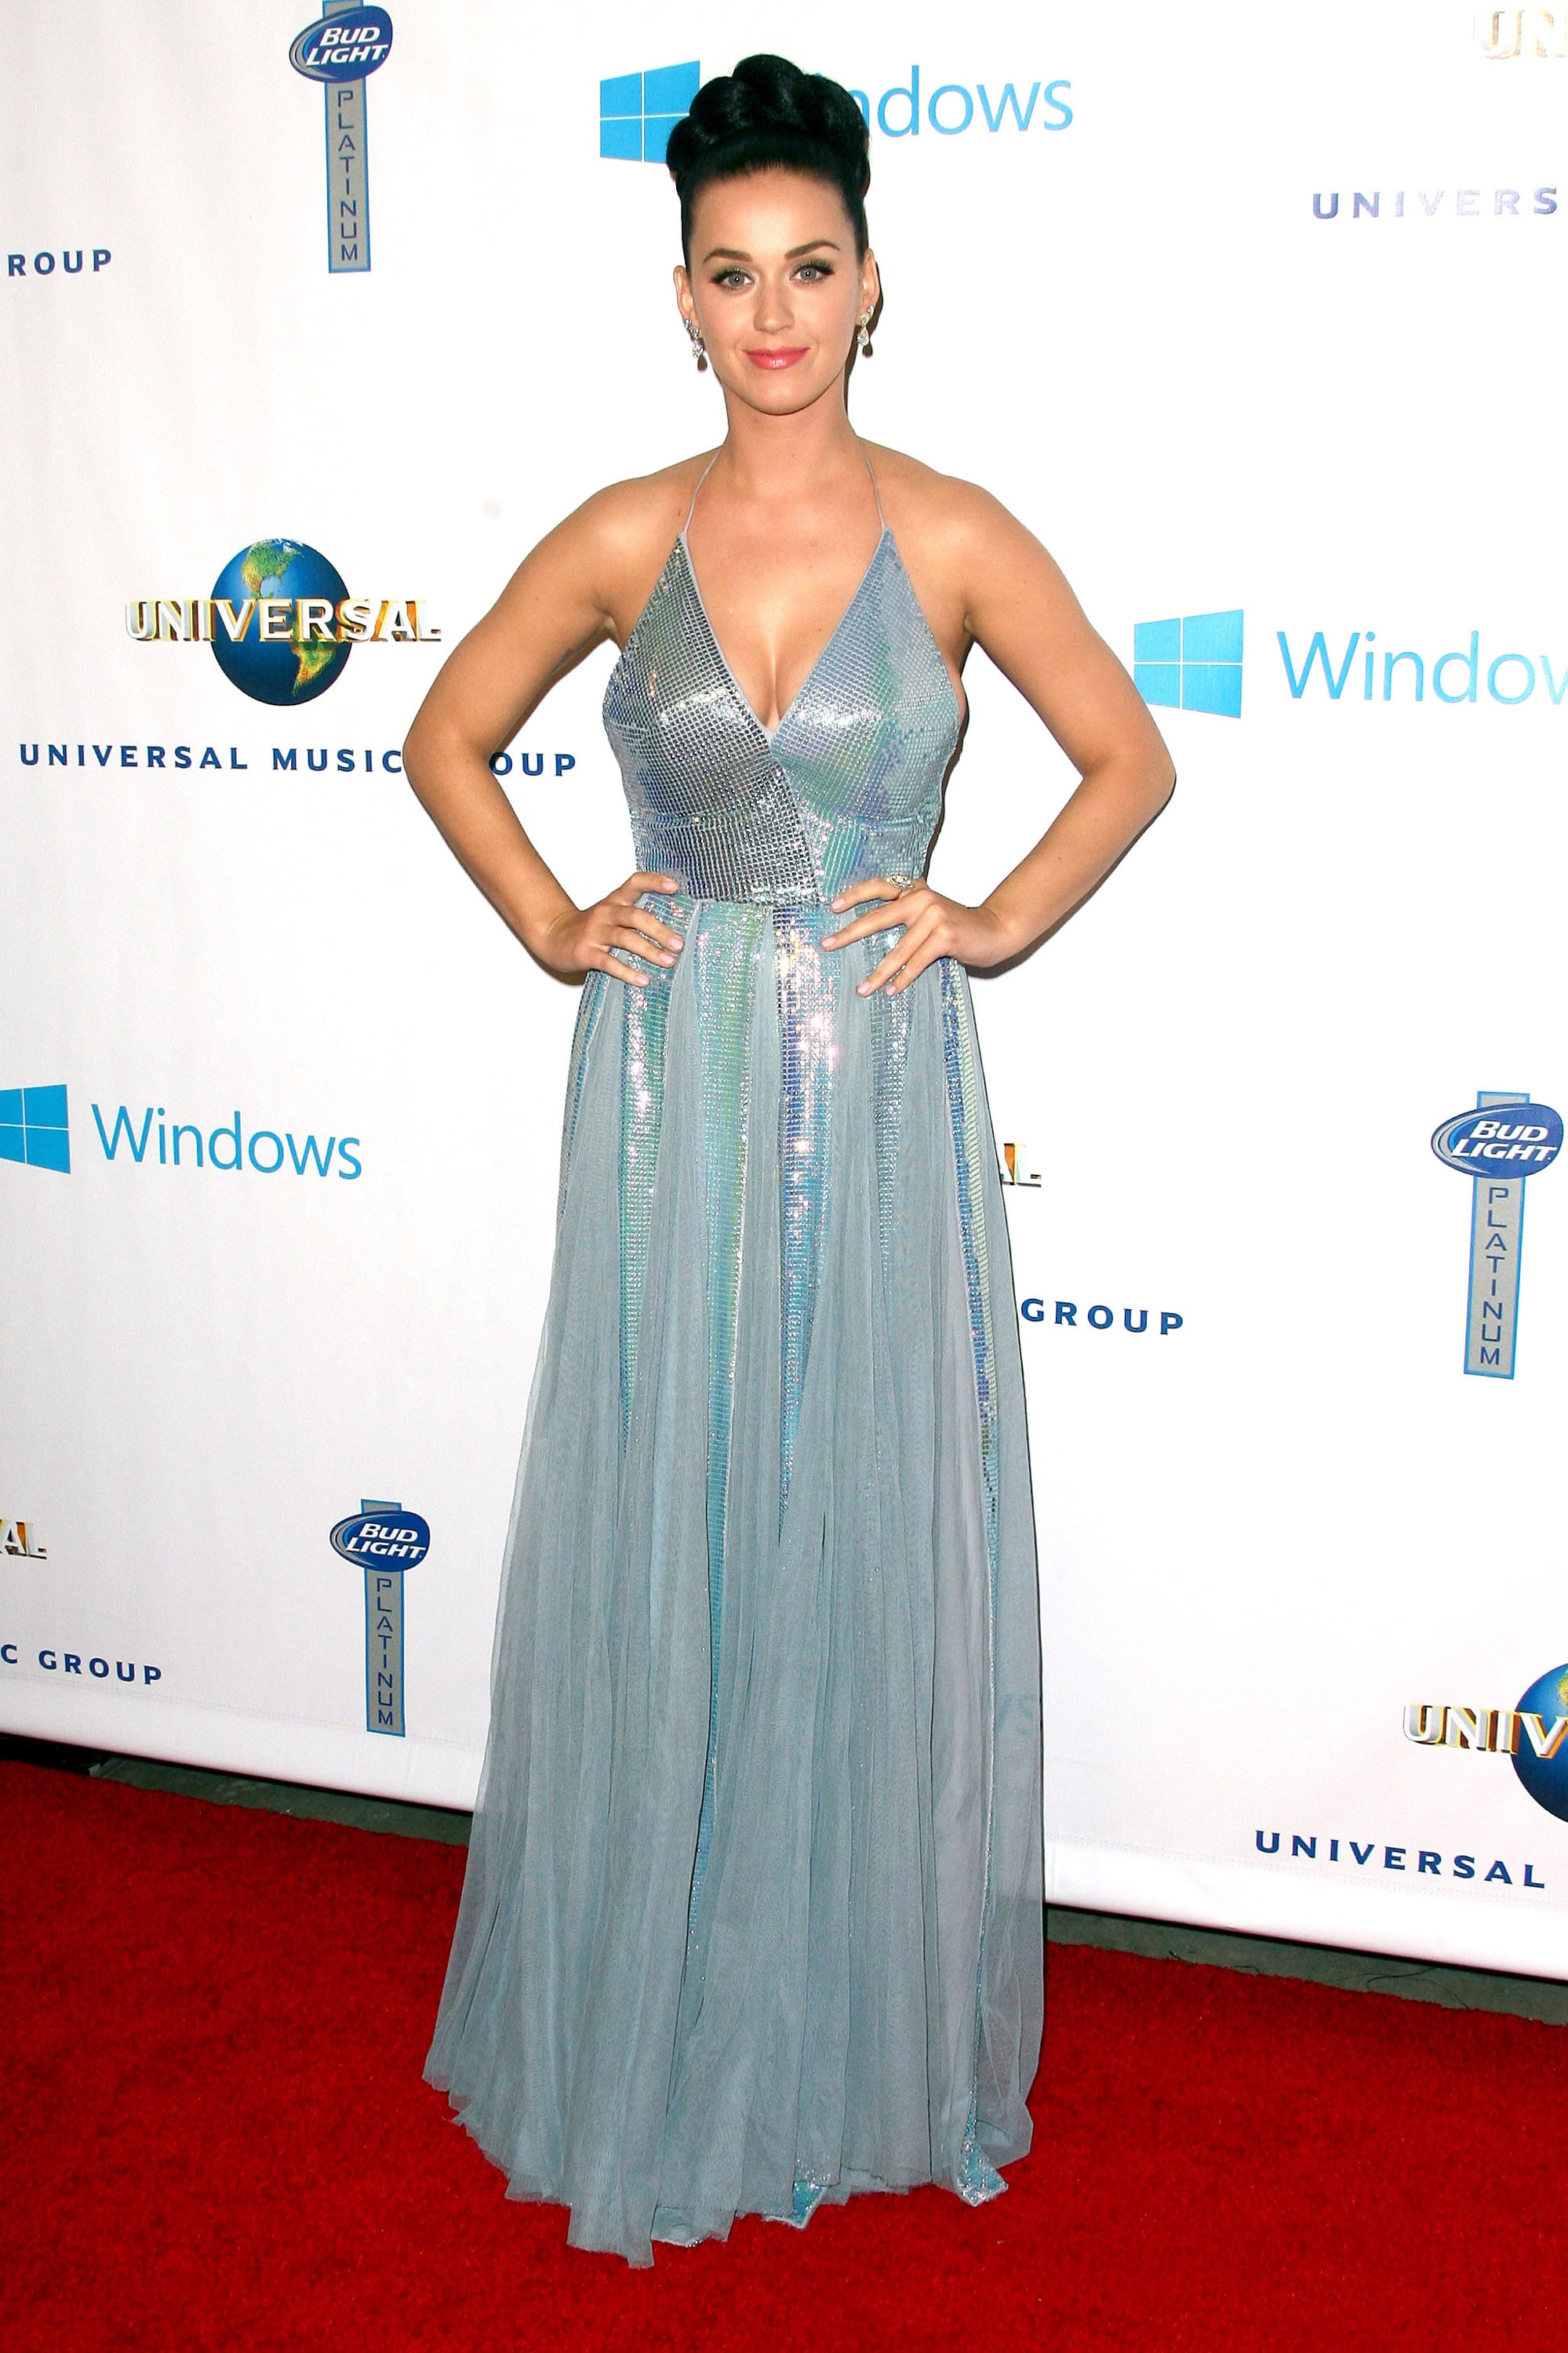 Katy perry blue dress 9gag login